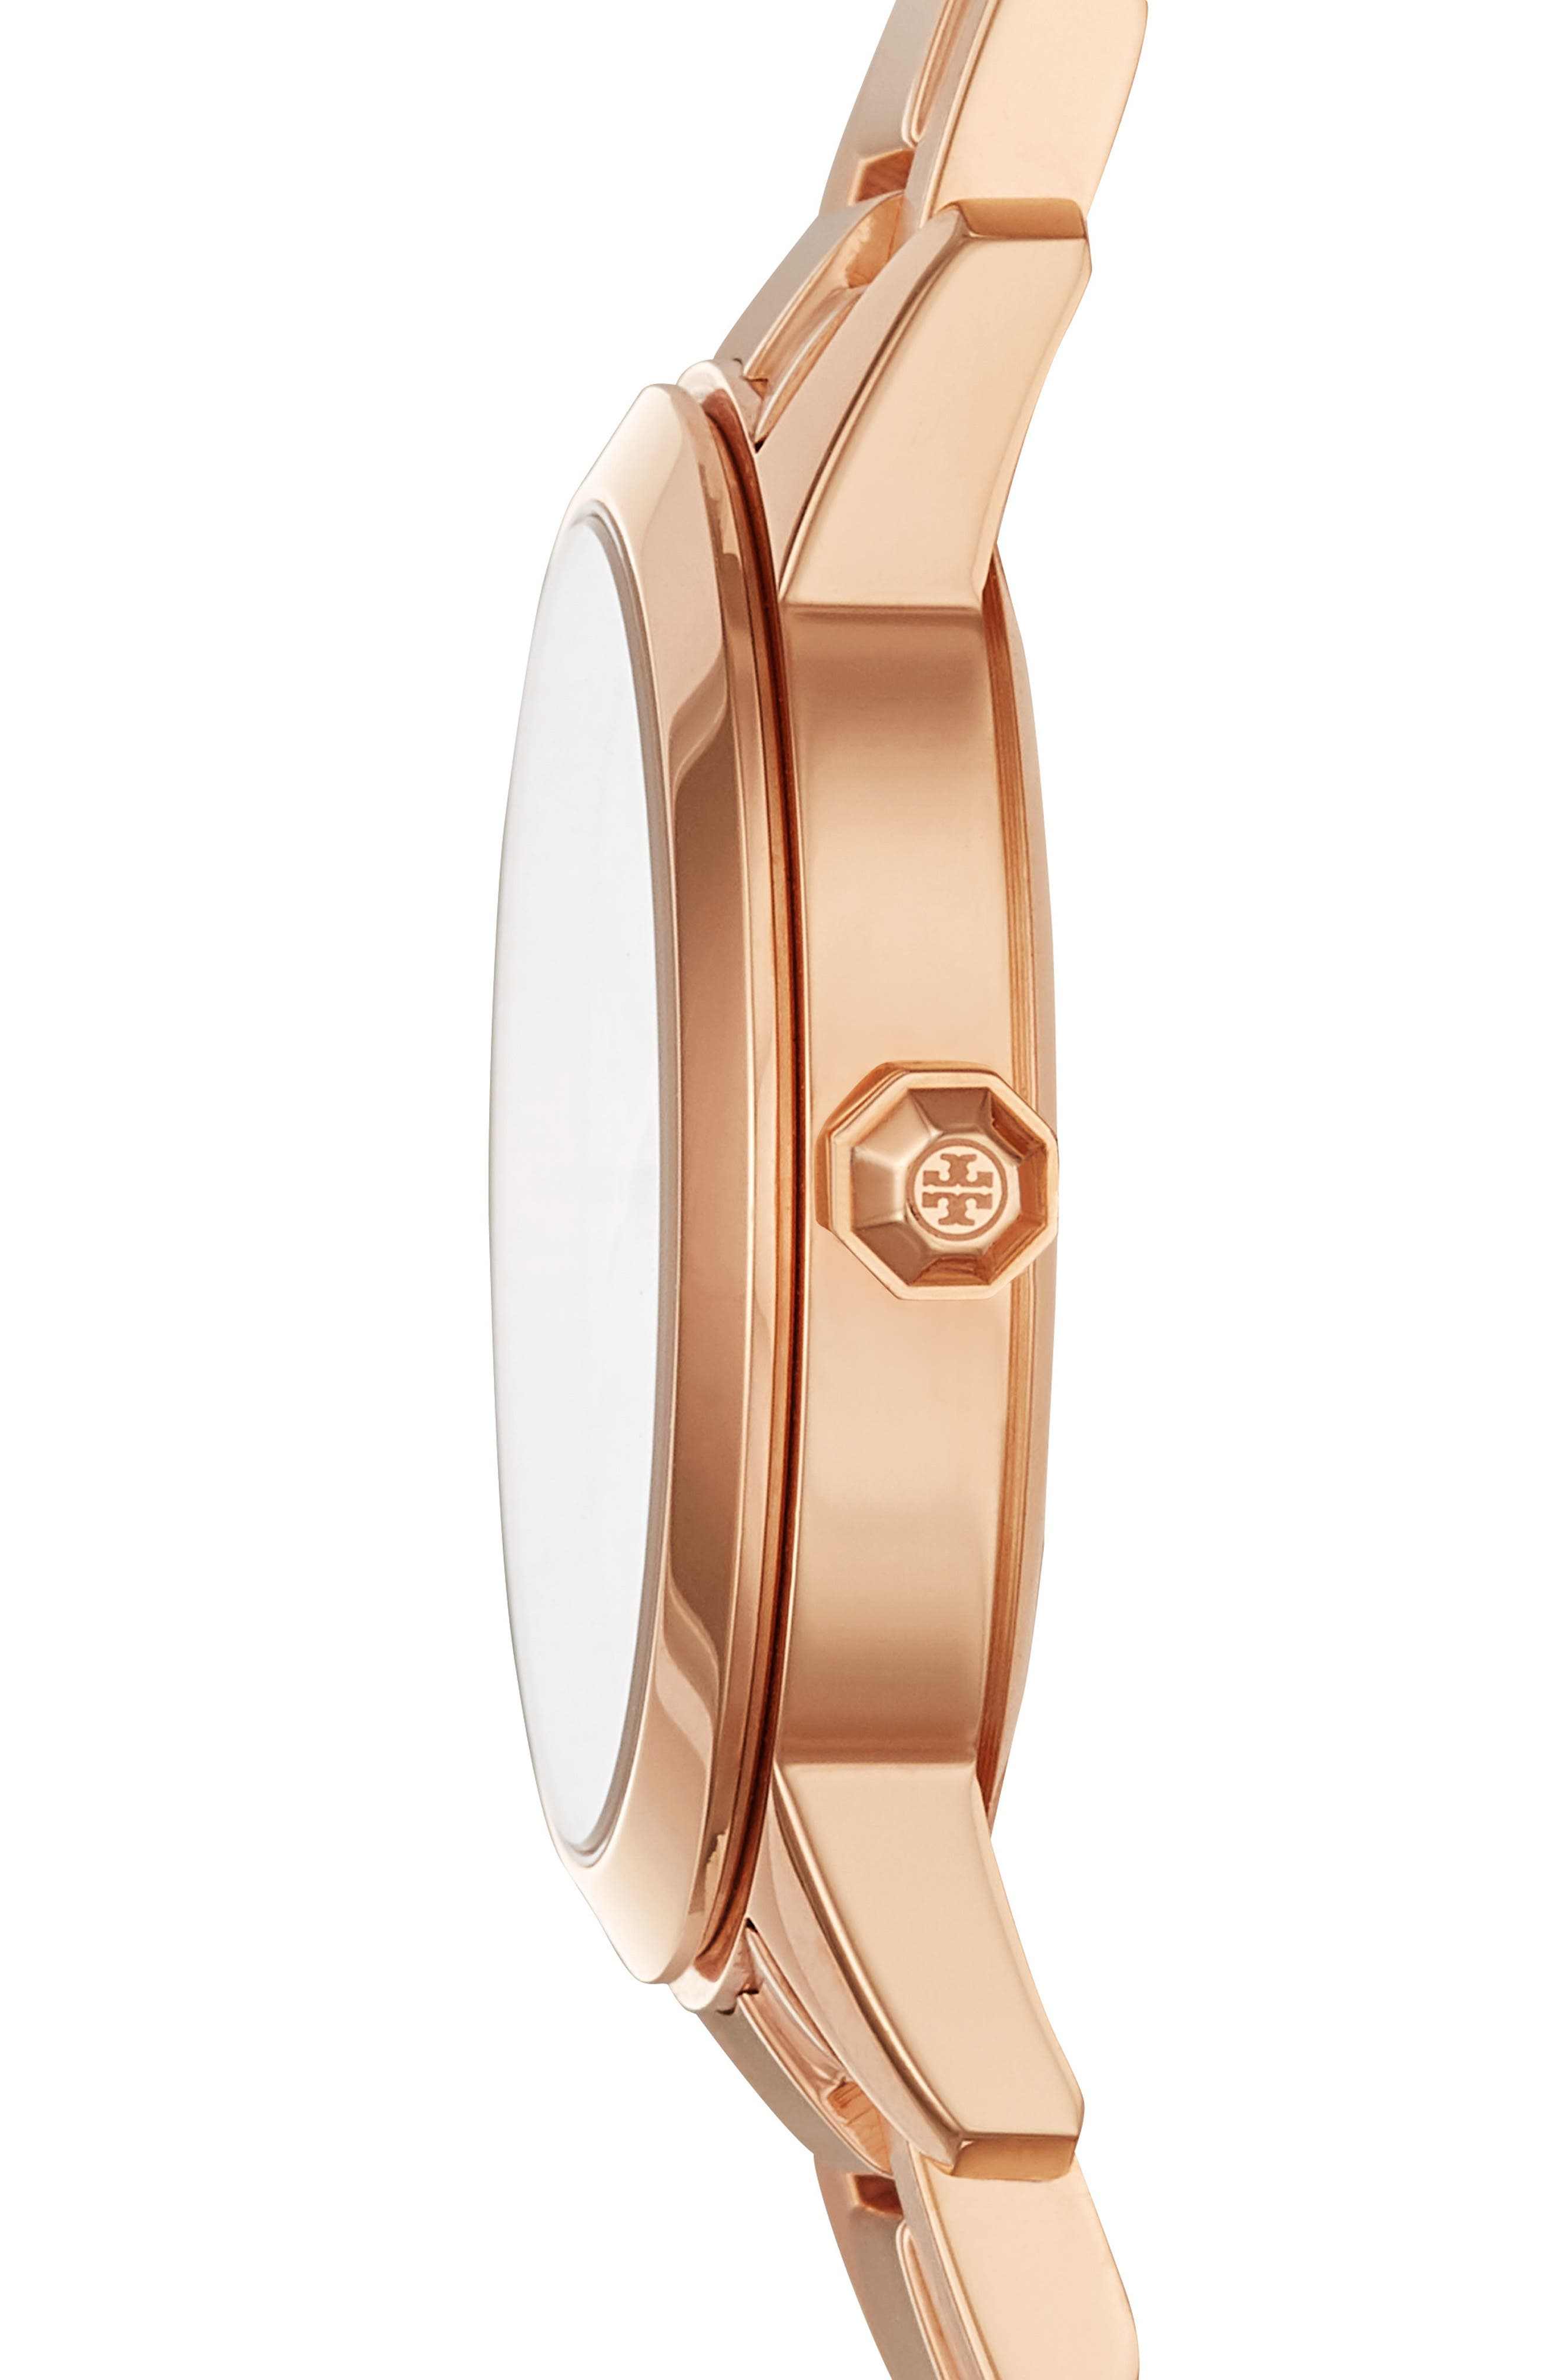 TORY BURCH,                             Collins Bracelet Watch, 38mm,                             Alternate thumbnail 2, color,                             ROSE GOLD/ WHITE/ ROSE GOLD